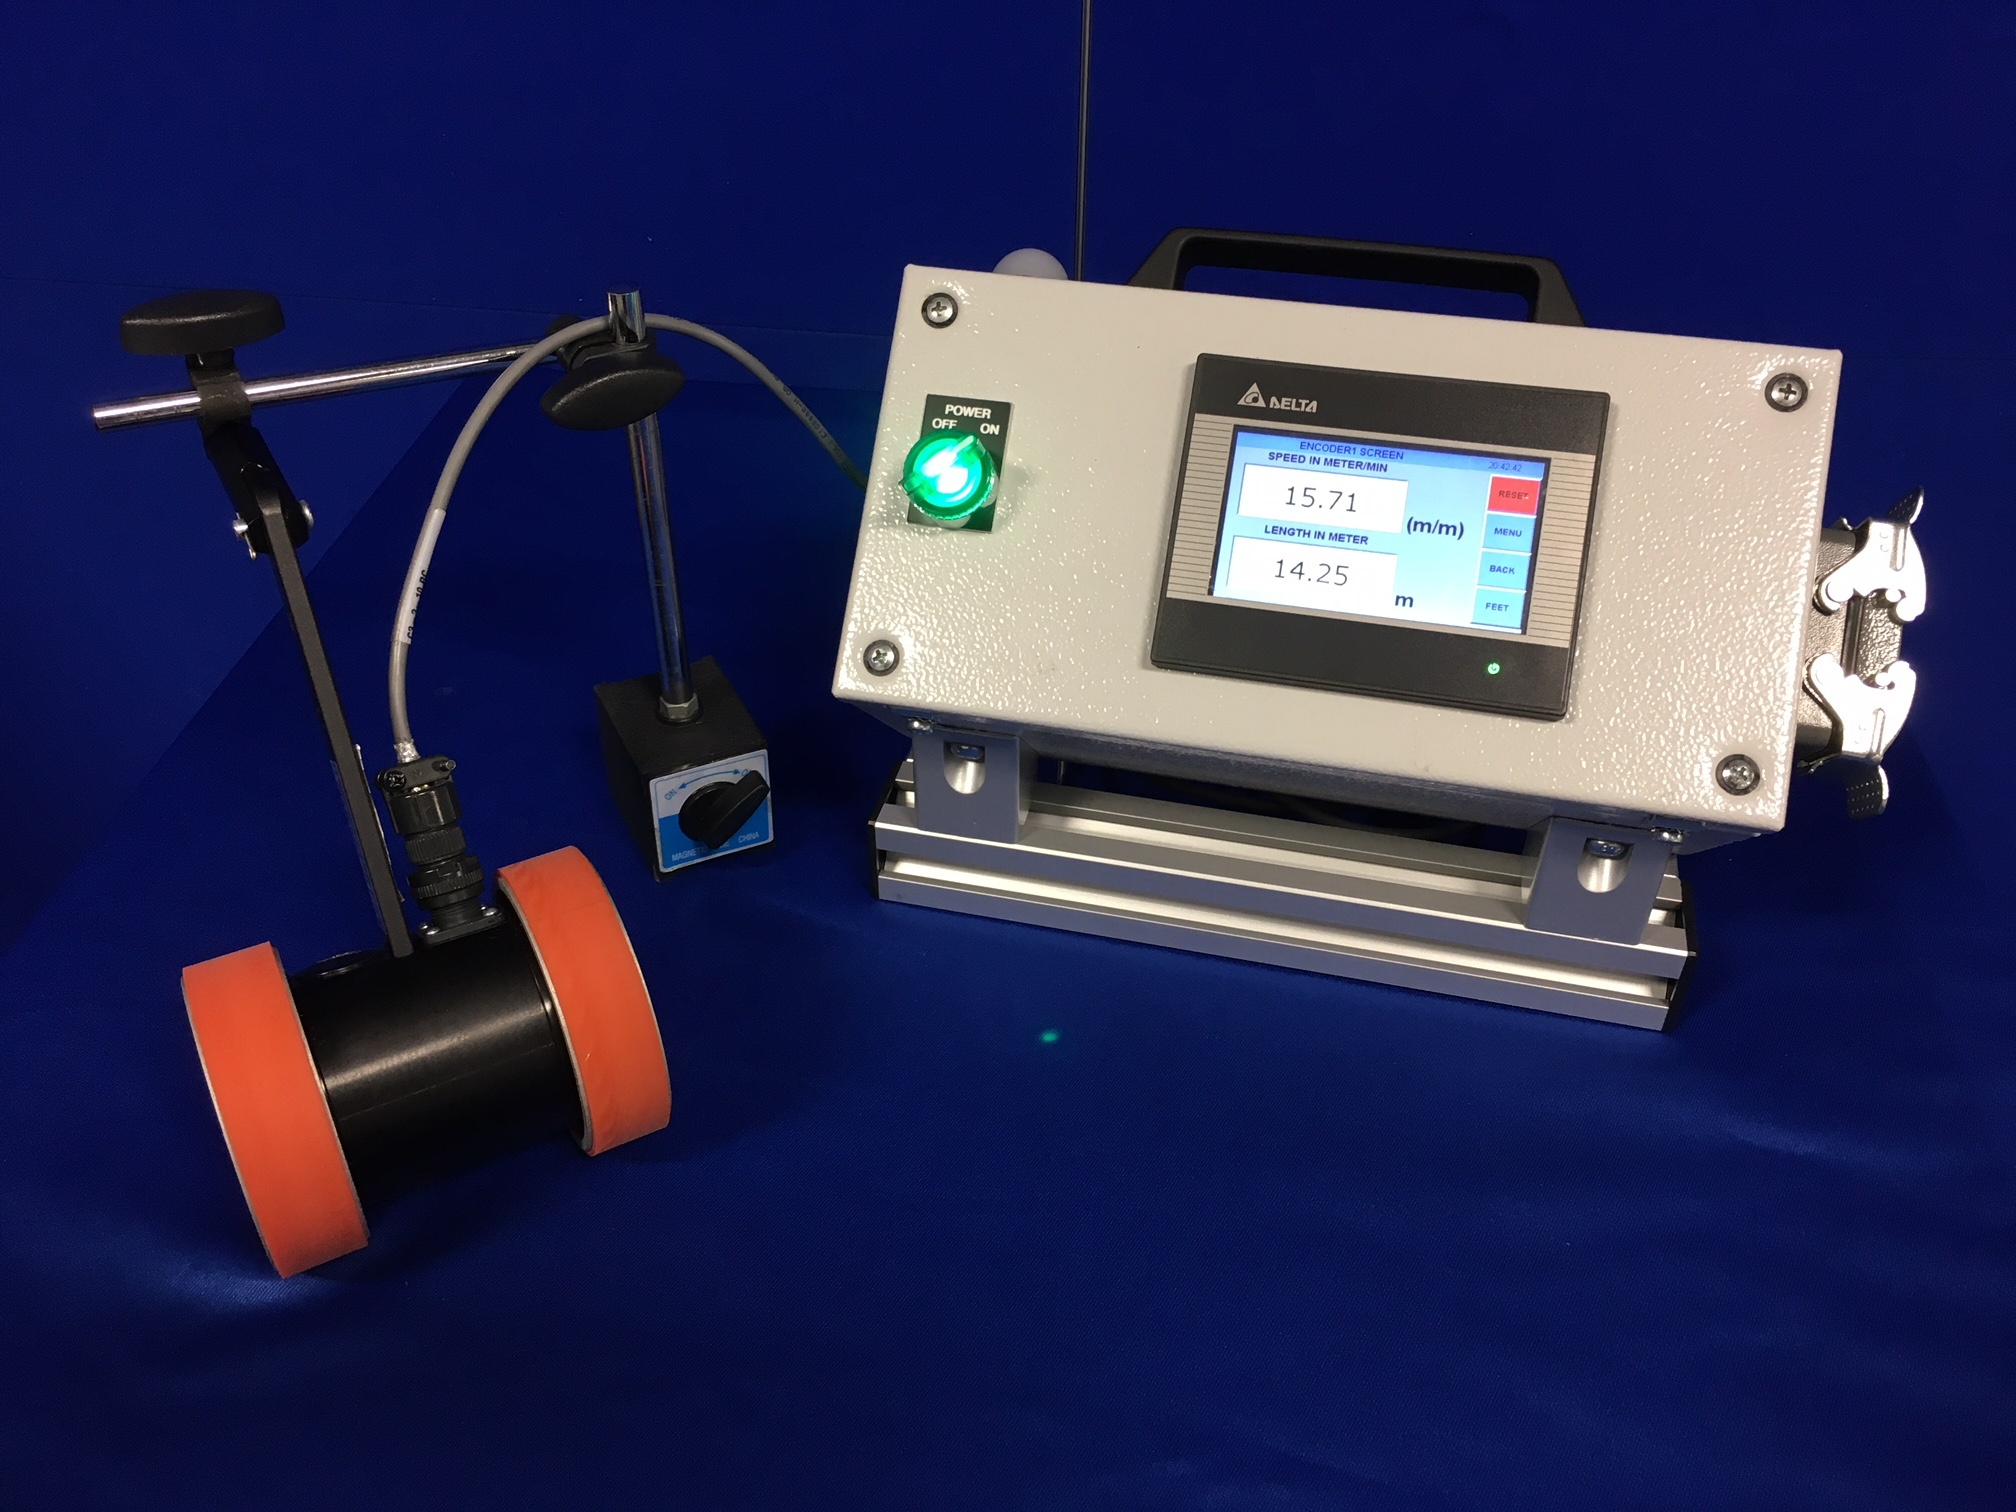 PLCS-1000 with Dual Wheel Encoder and Magnetic Mounting Stand